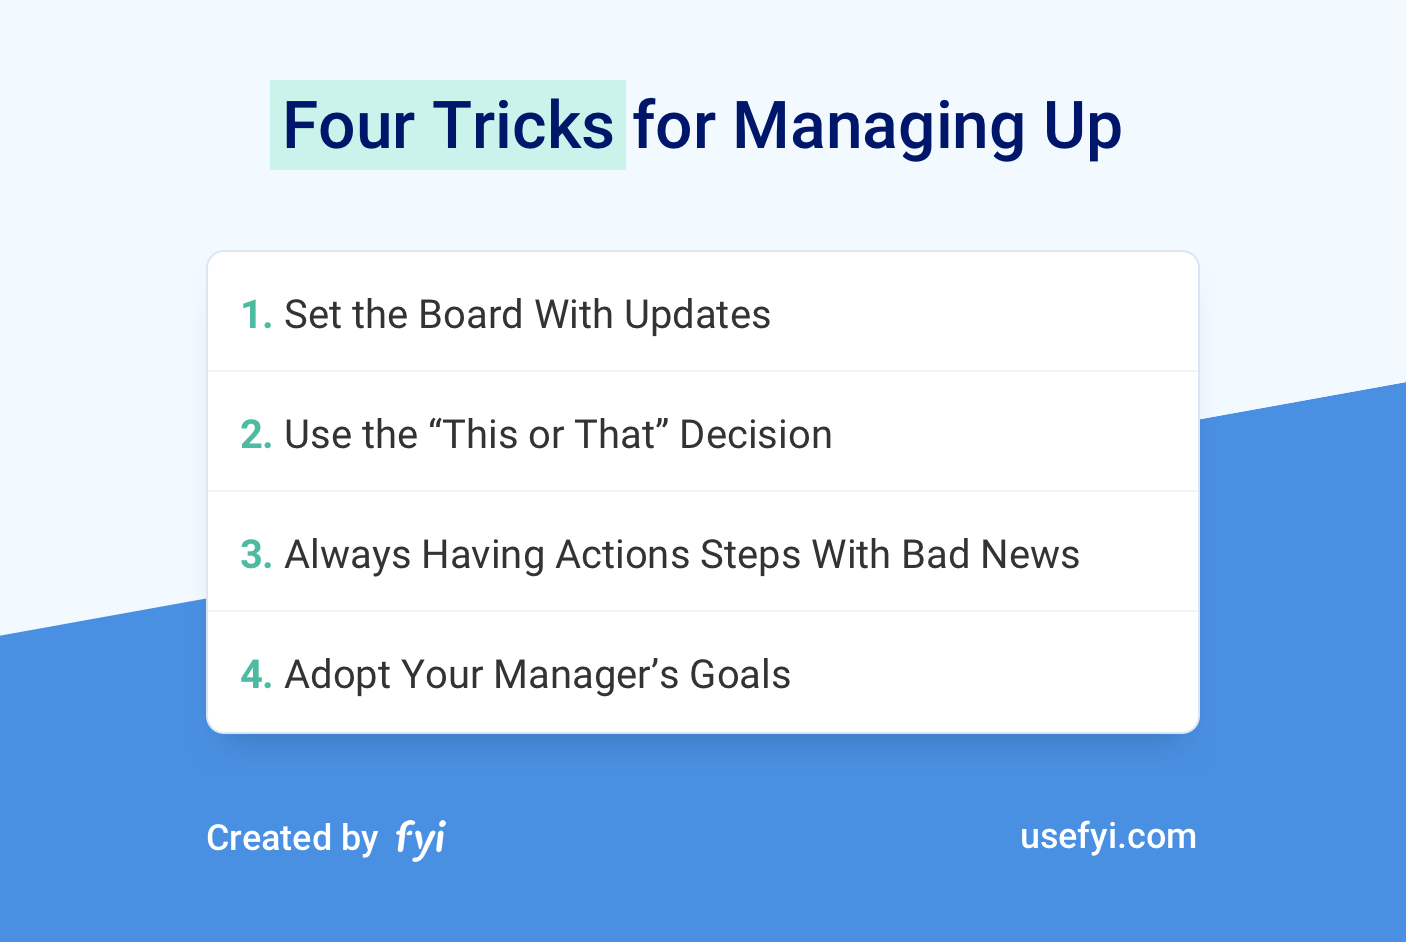 Four Tricks for Managing Up